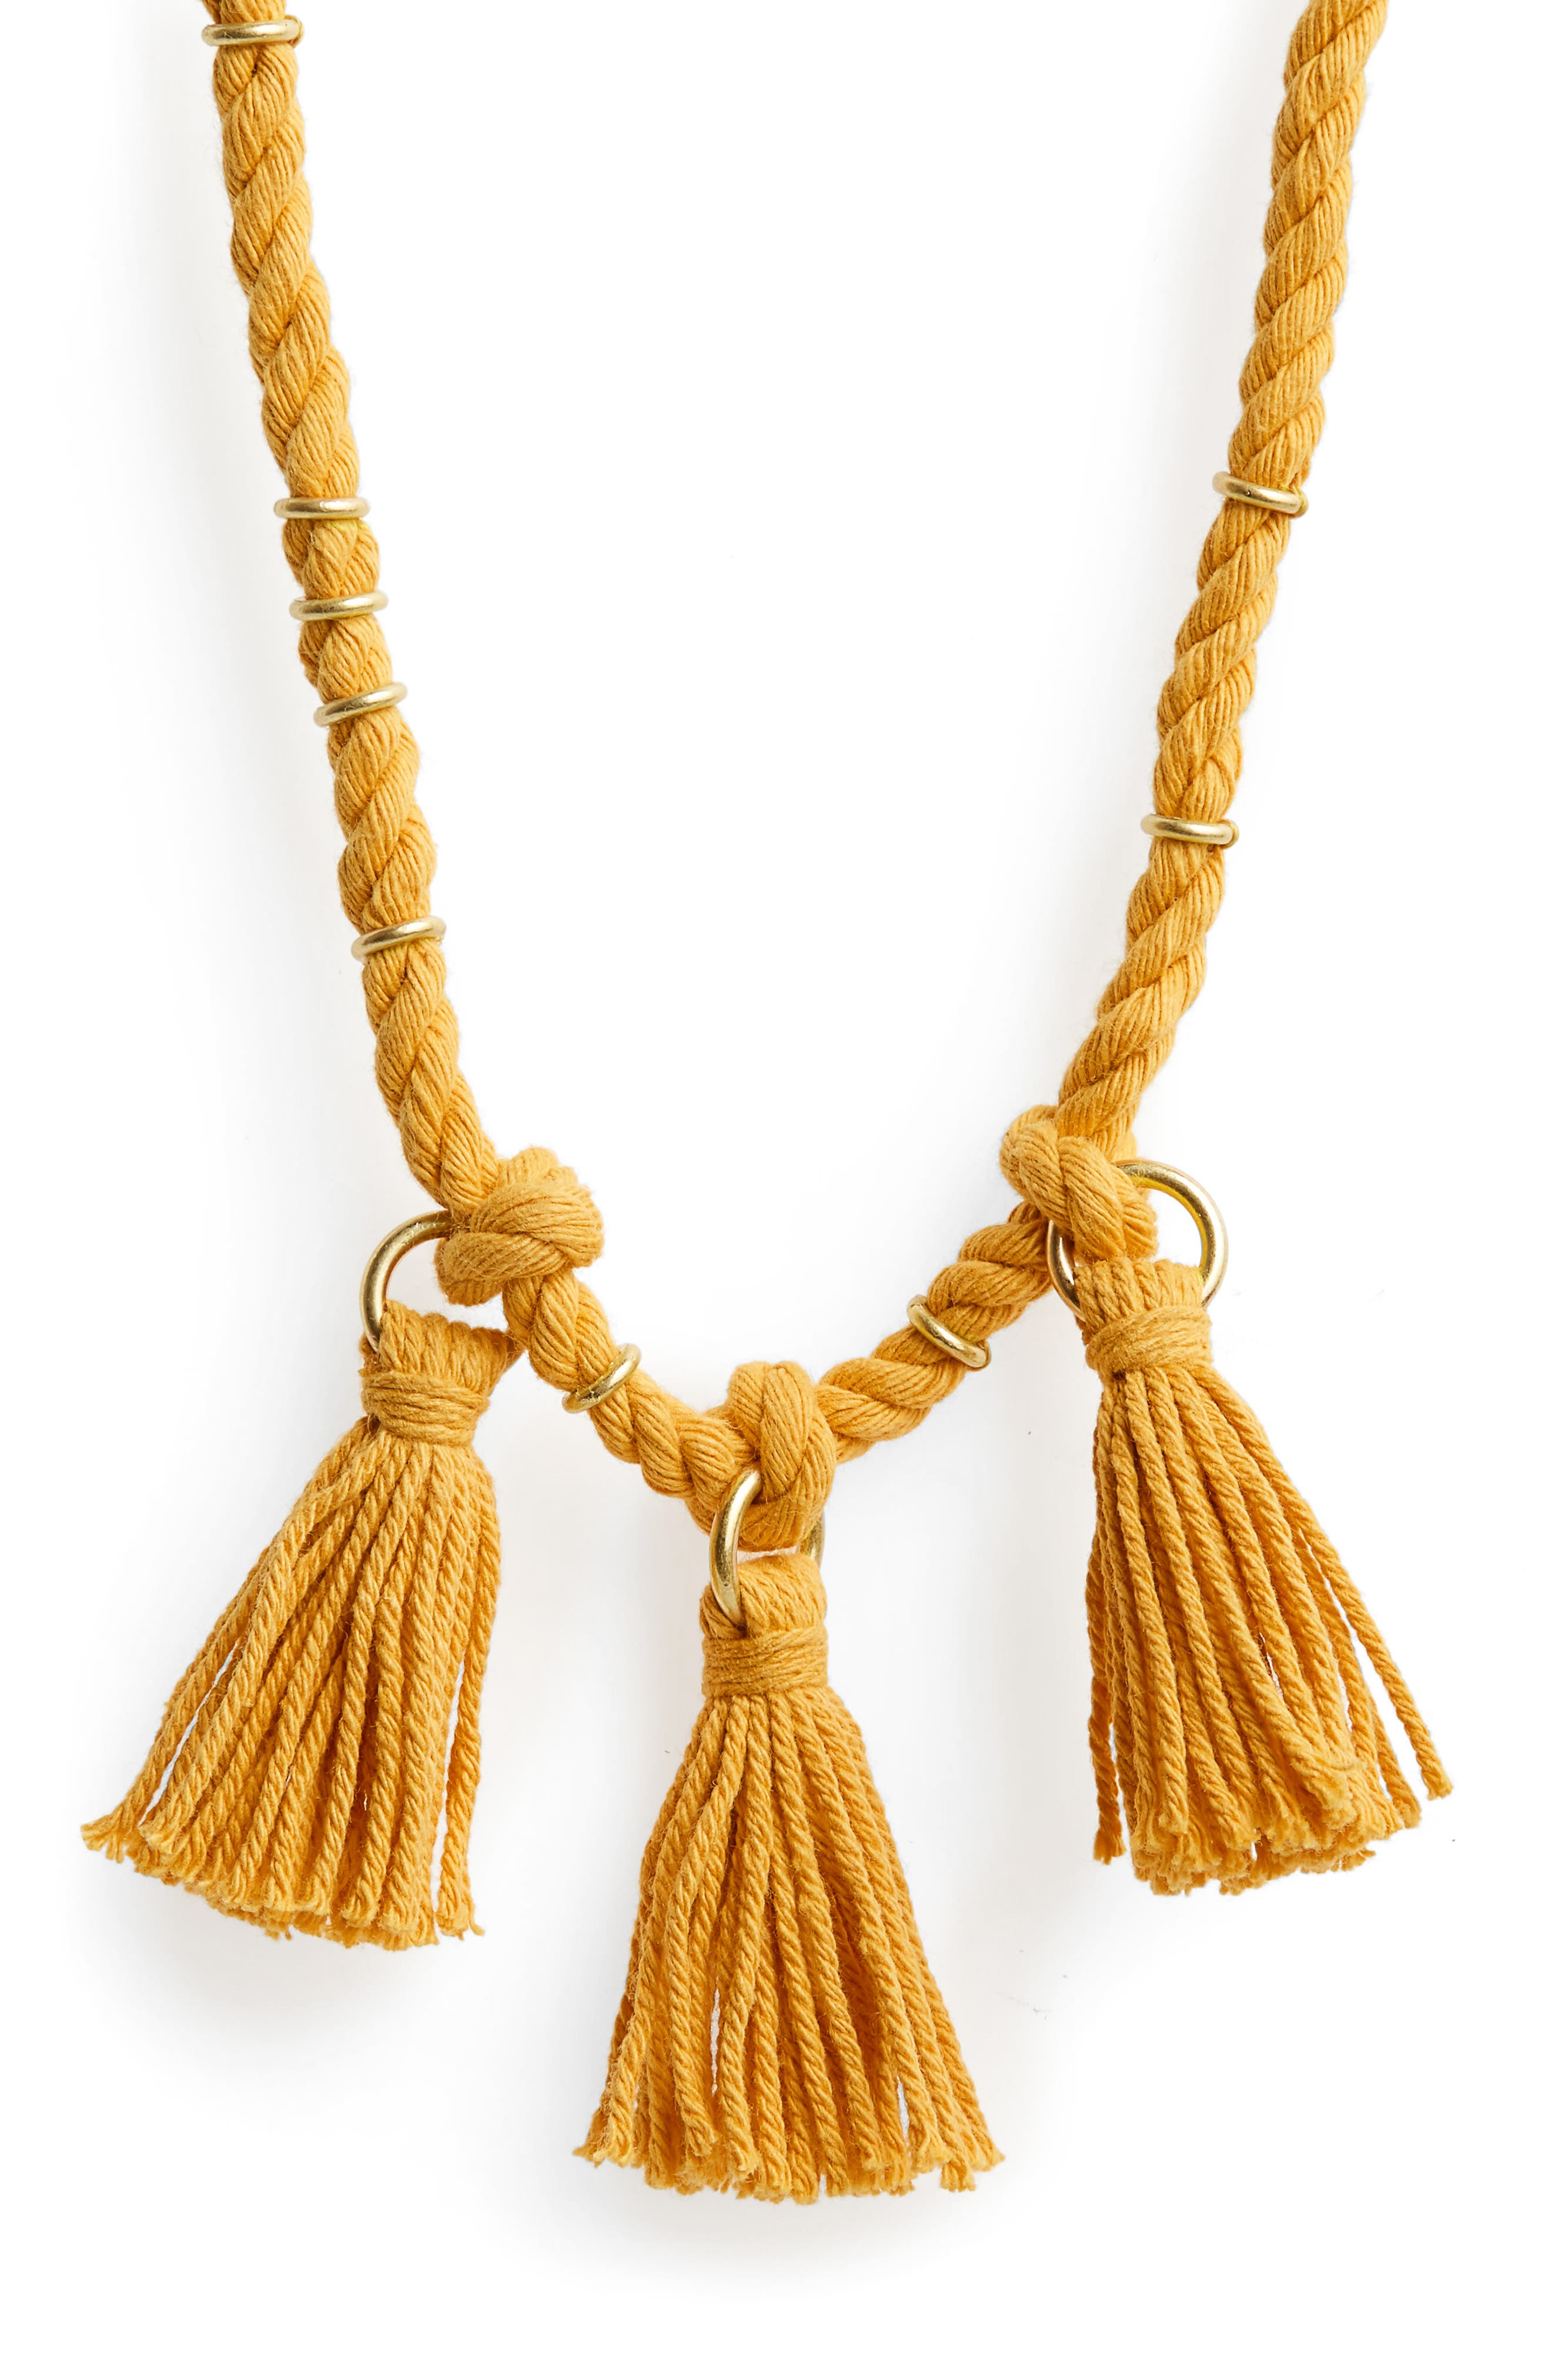 MADEWELL Rope & Tassel Necklace, Main, color, 717